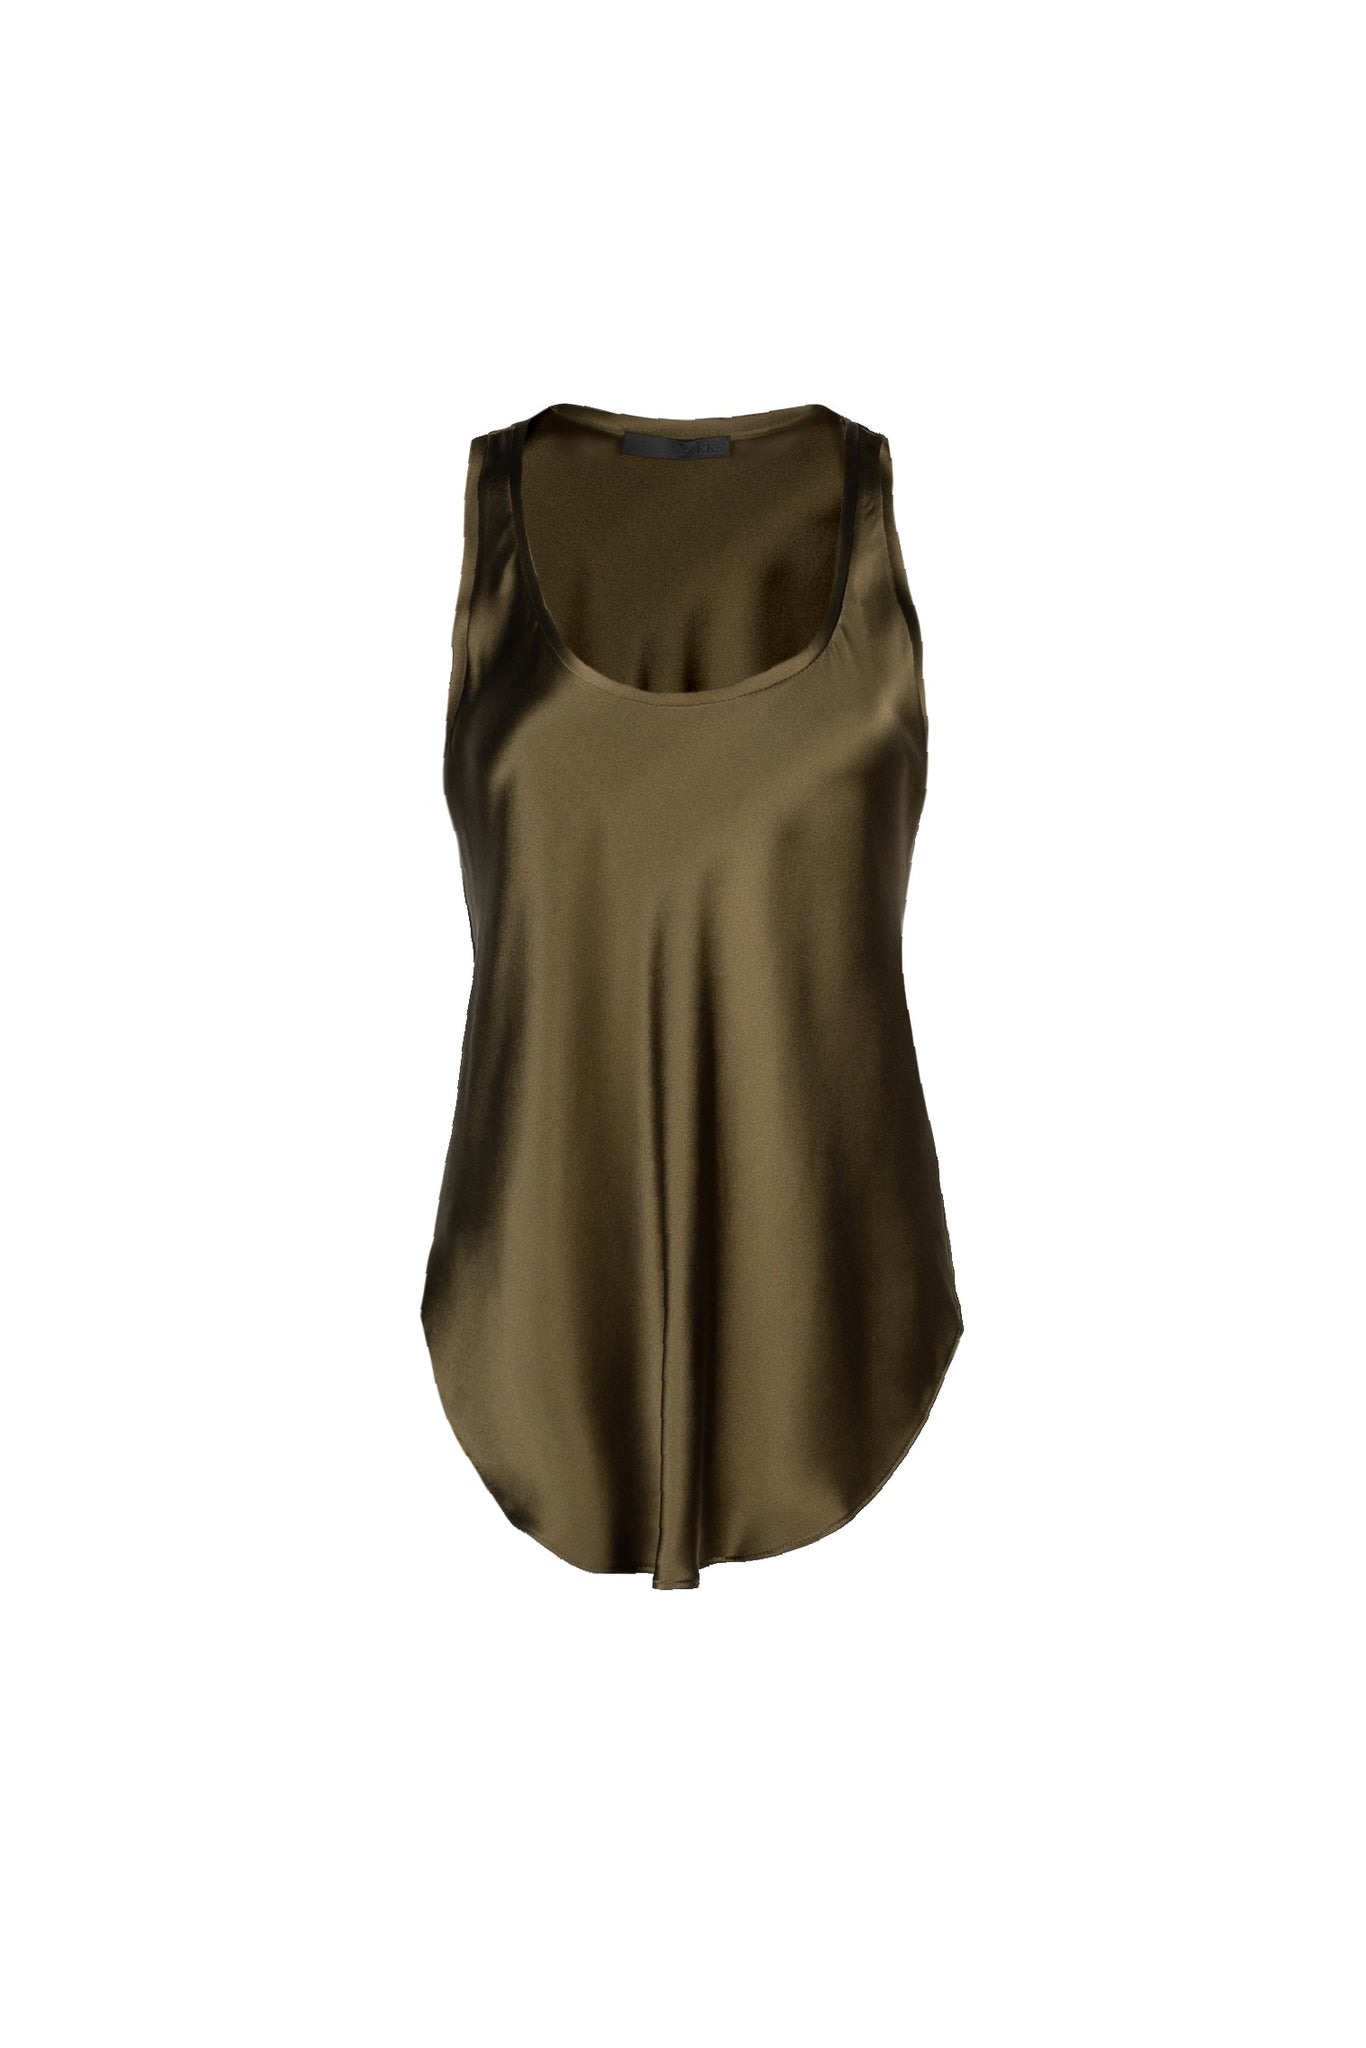 KES Raw Edge Tank Top- Military